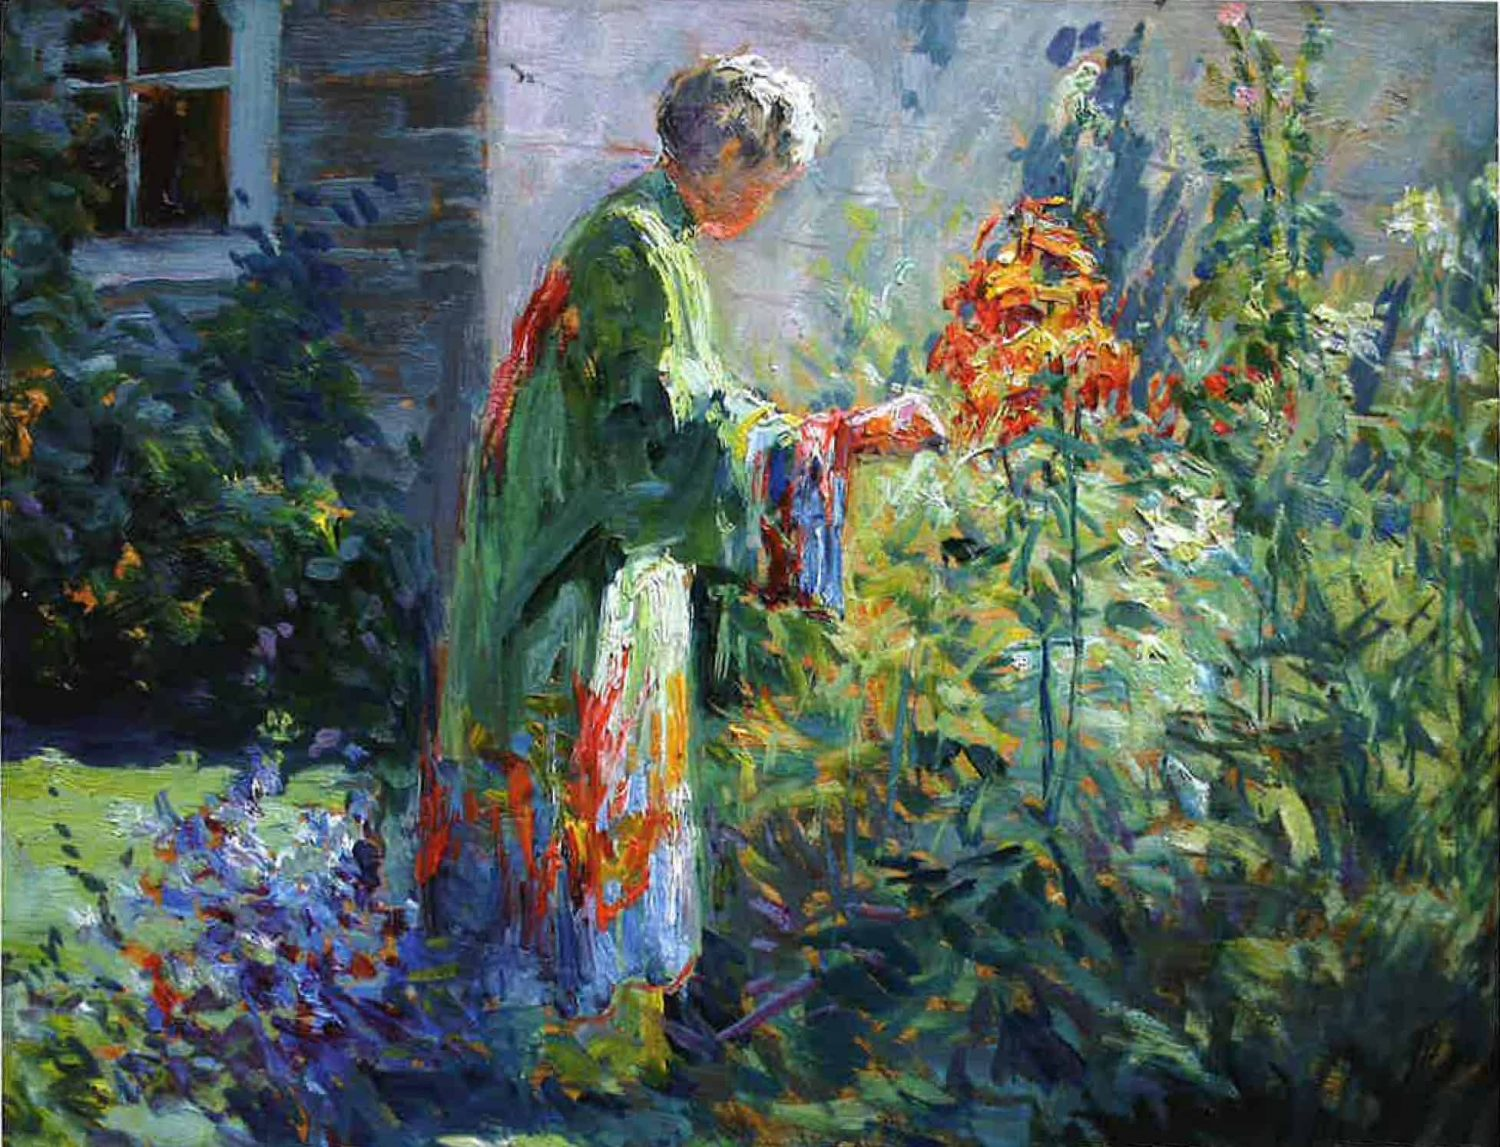 Matilda Browne, In the Garden, 1915